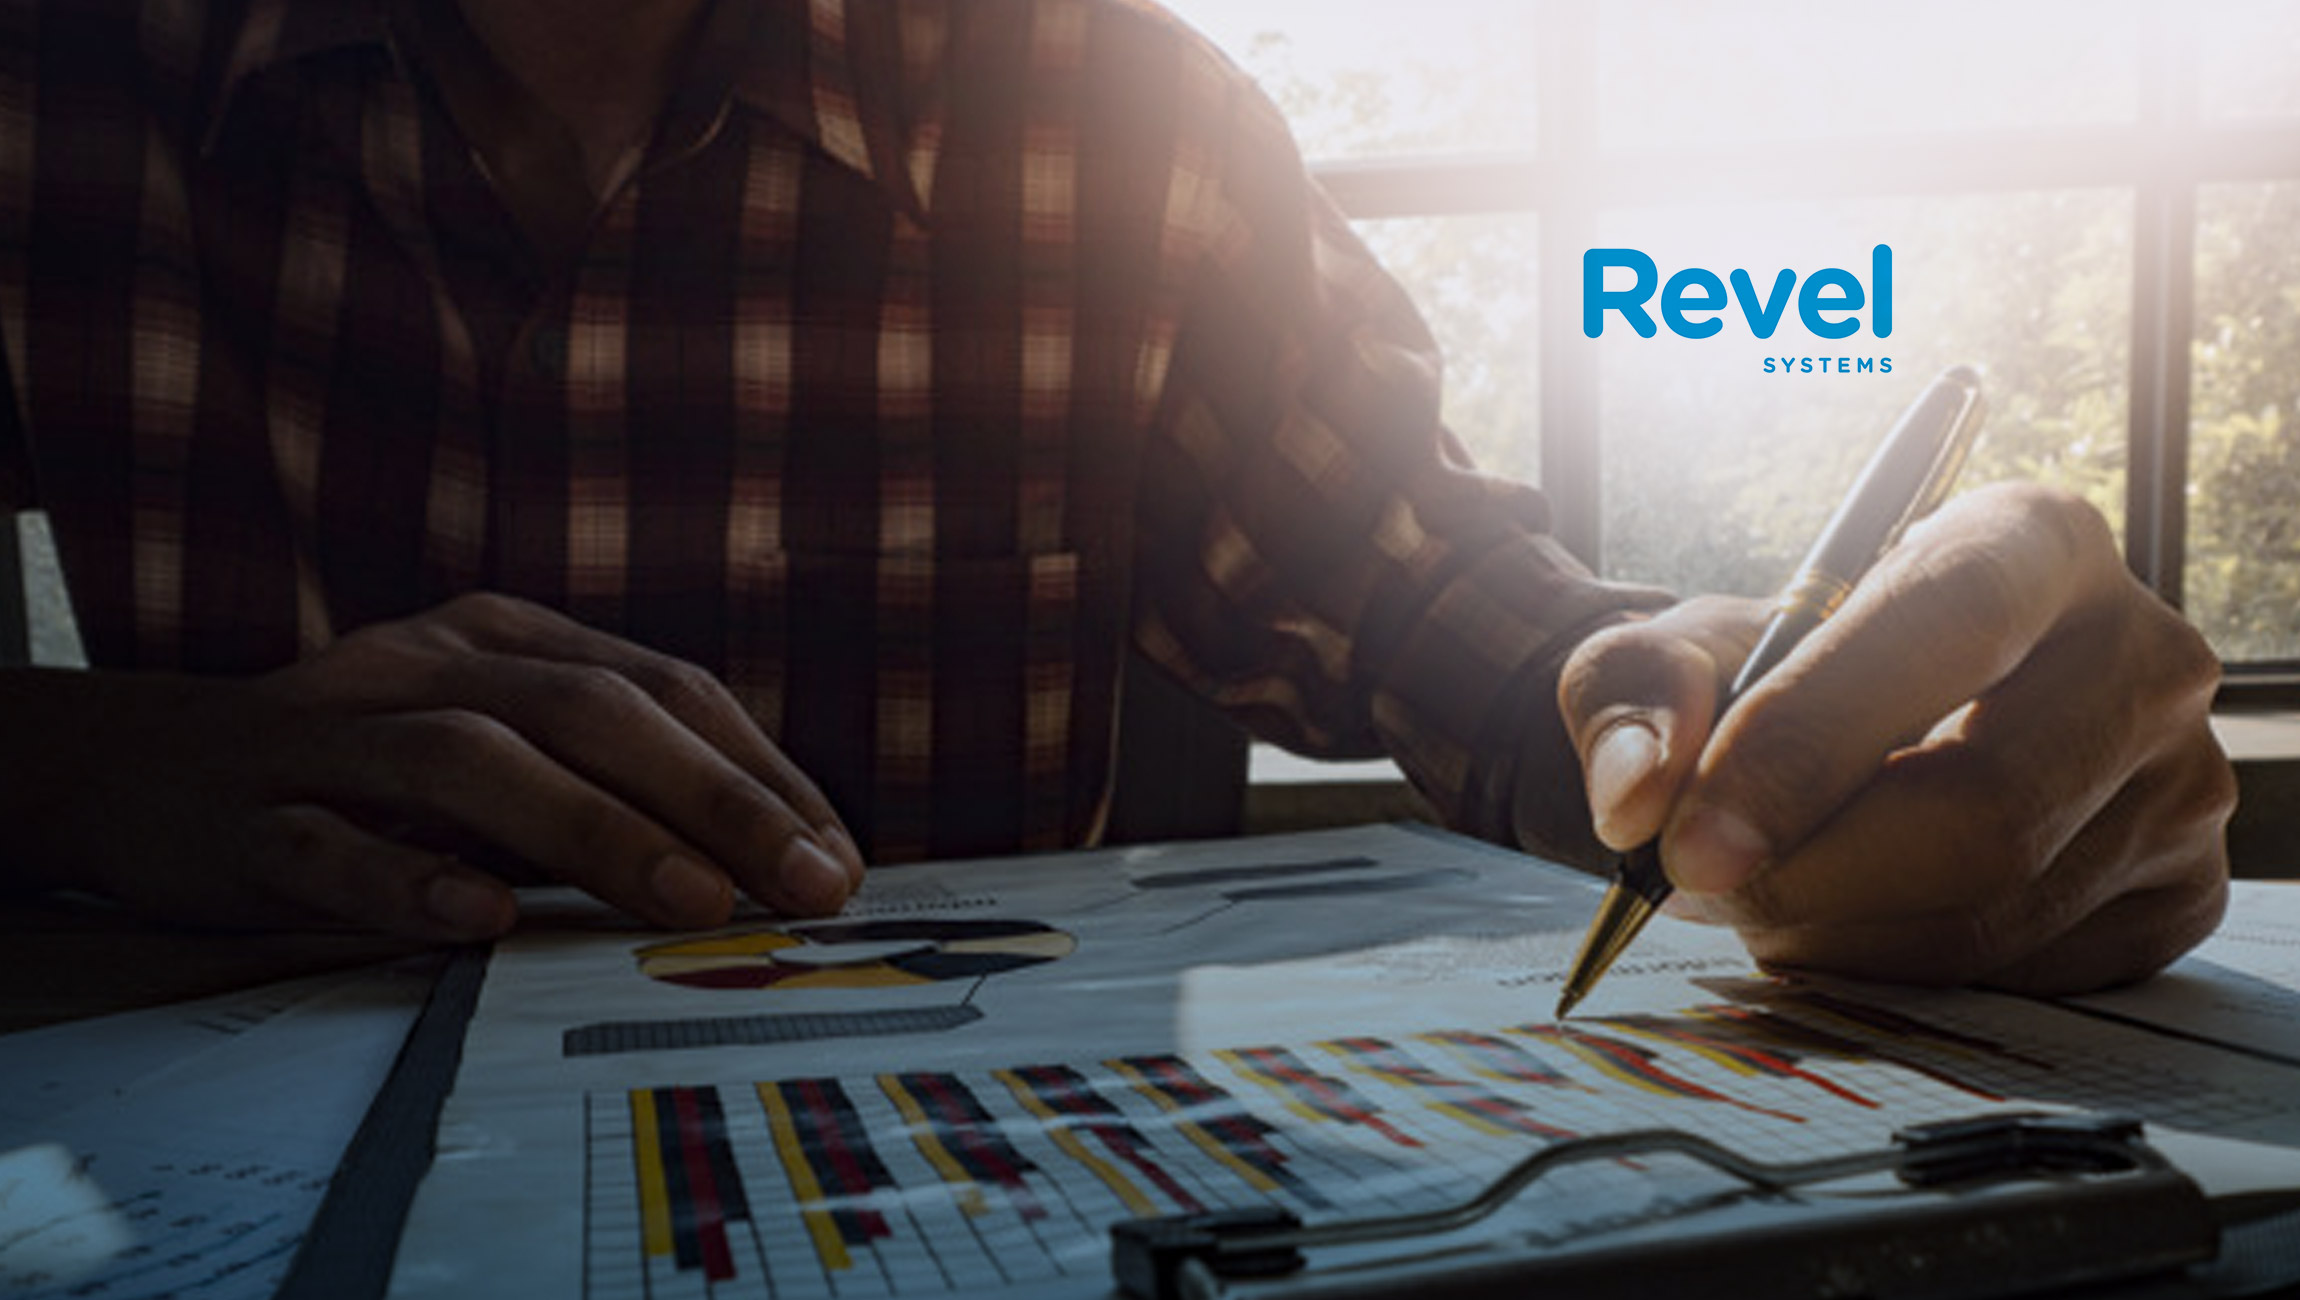 Revel's New Concierge Services Help Restaurants and Retailers Succeed by Maximizing the Value of Their Technology